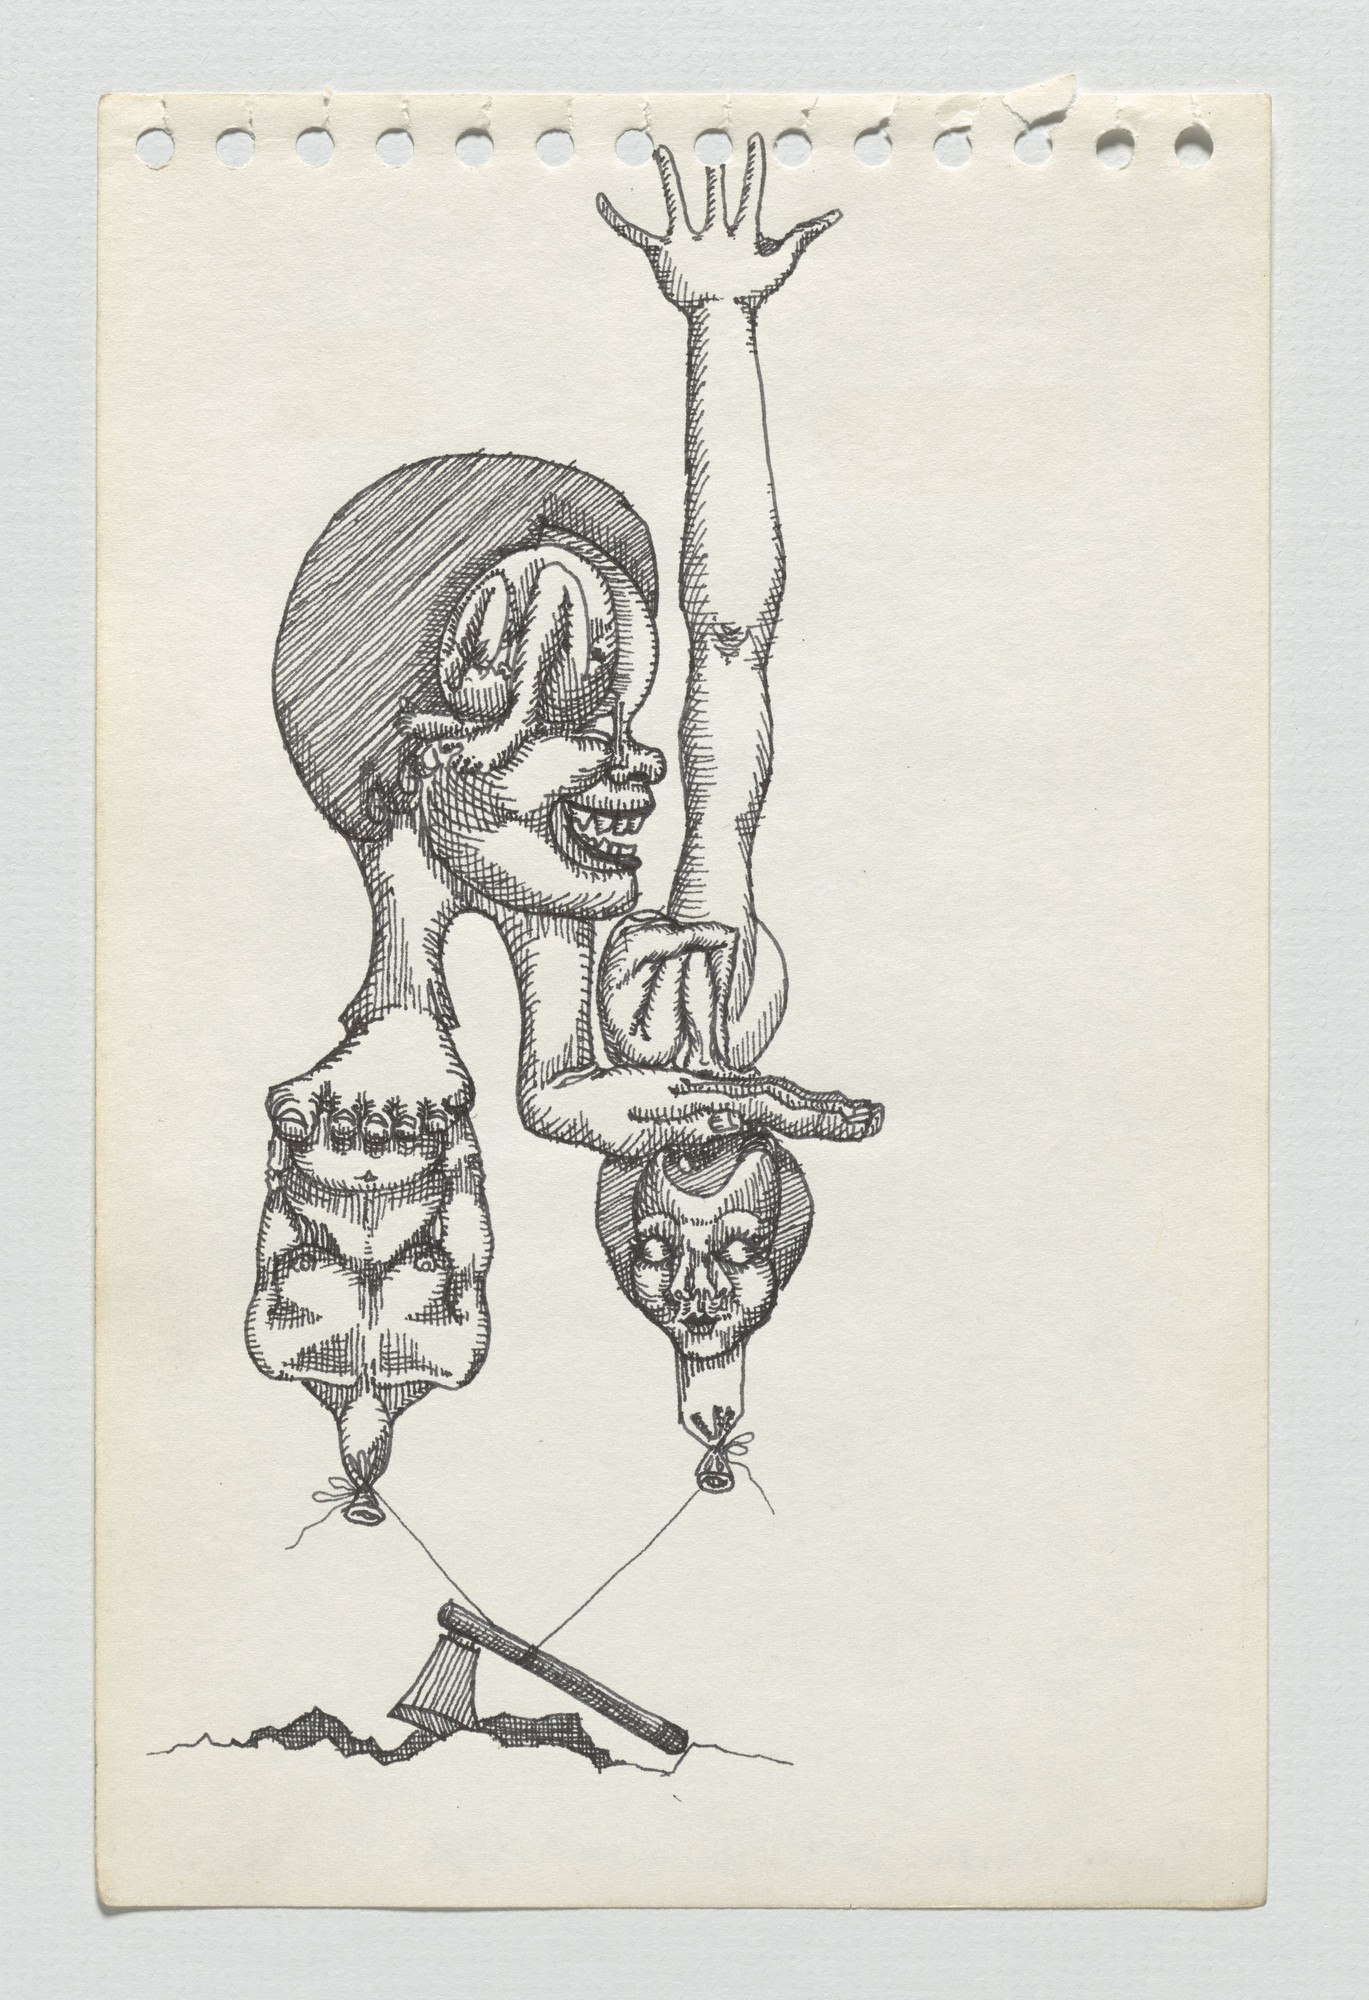 Adrian Piper. The Barbie Doll Drawings. 1967